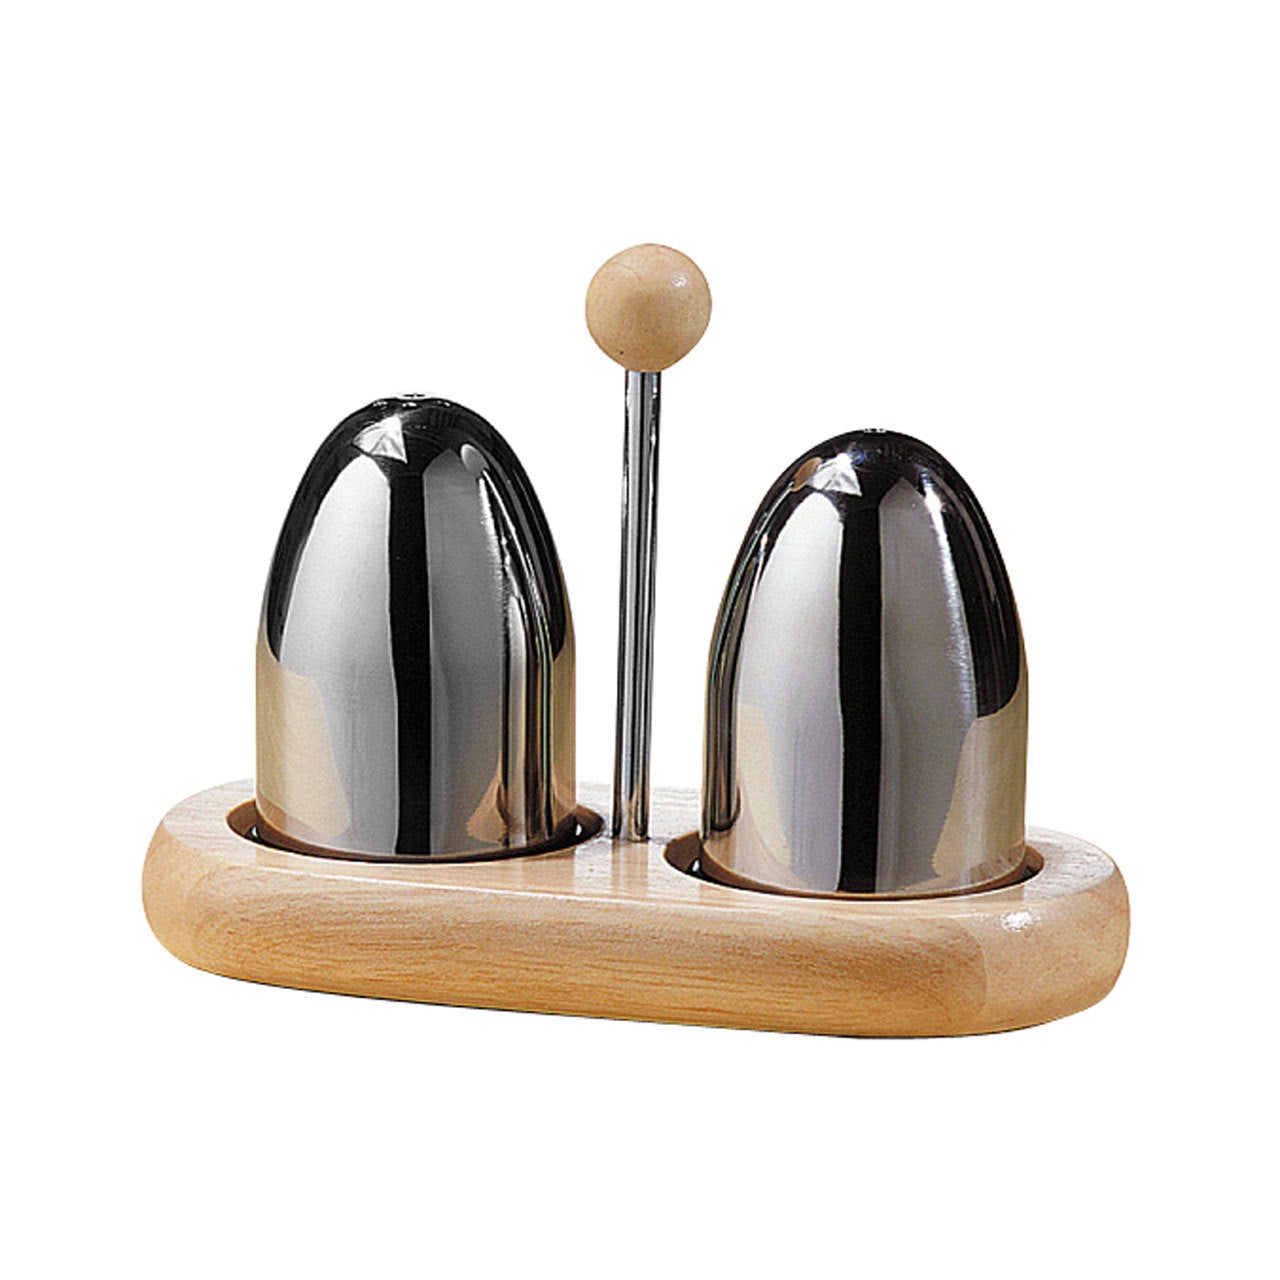 PREMIER S/S SALT & PEPPER SET ON RUBBERWOOD ST - 1103158